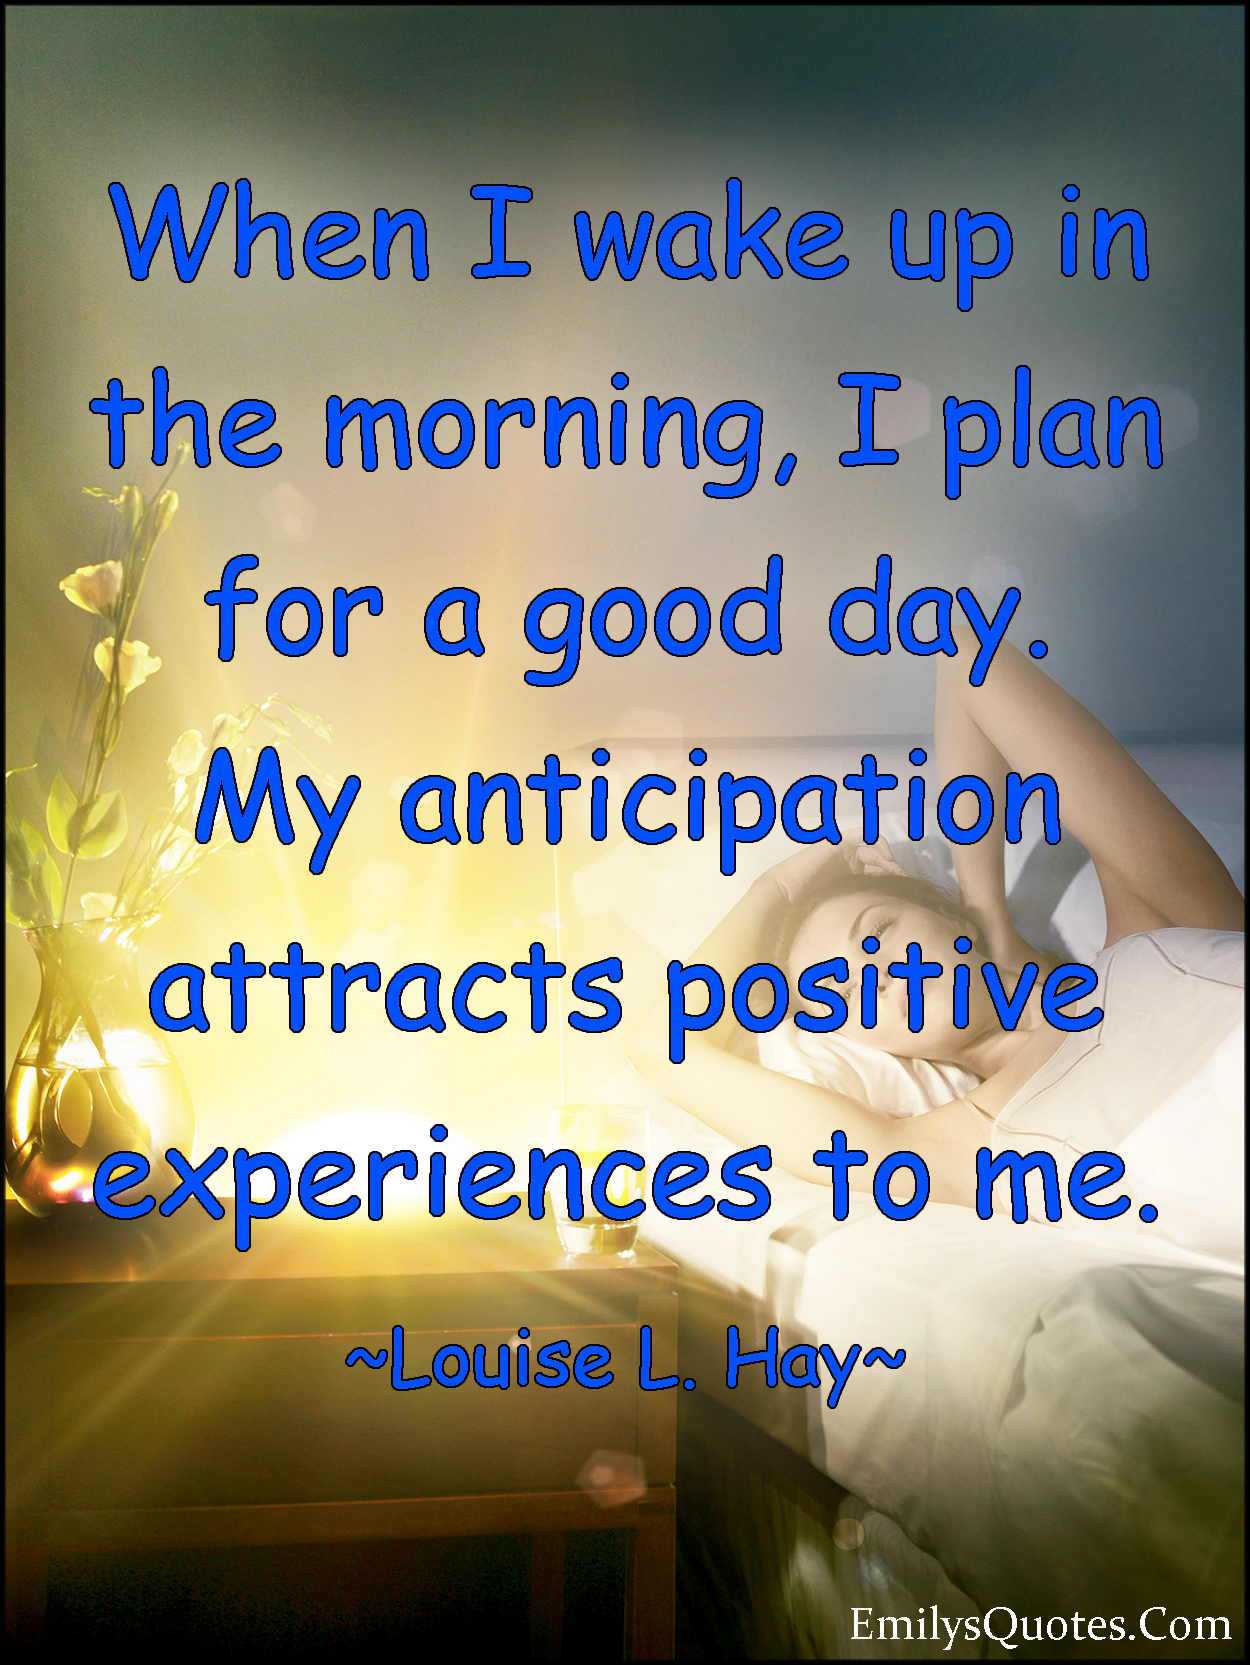 EmilysQuotes.Com - wake up, morning, positive, anticipation, experience, attitude, inspirational, Louise L. Hay